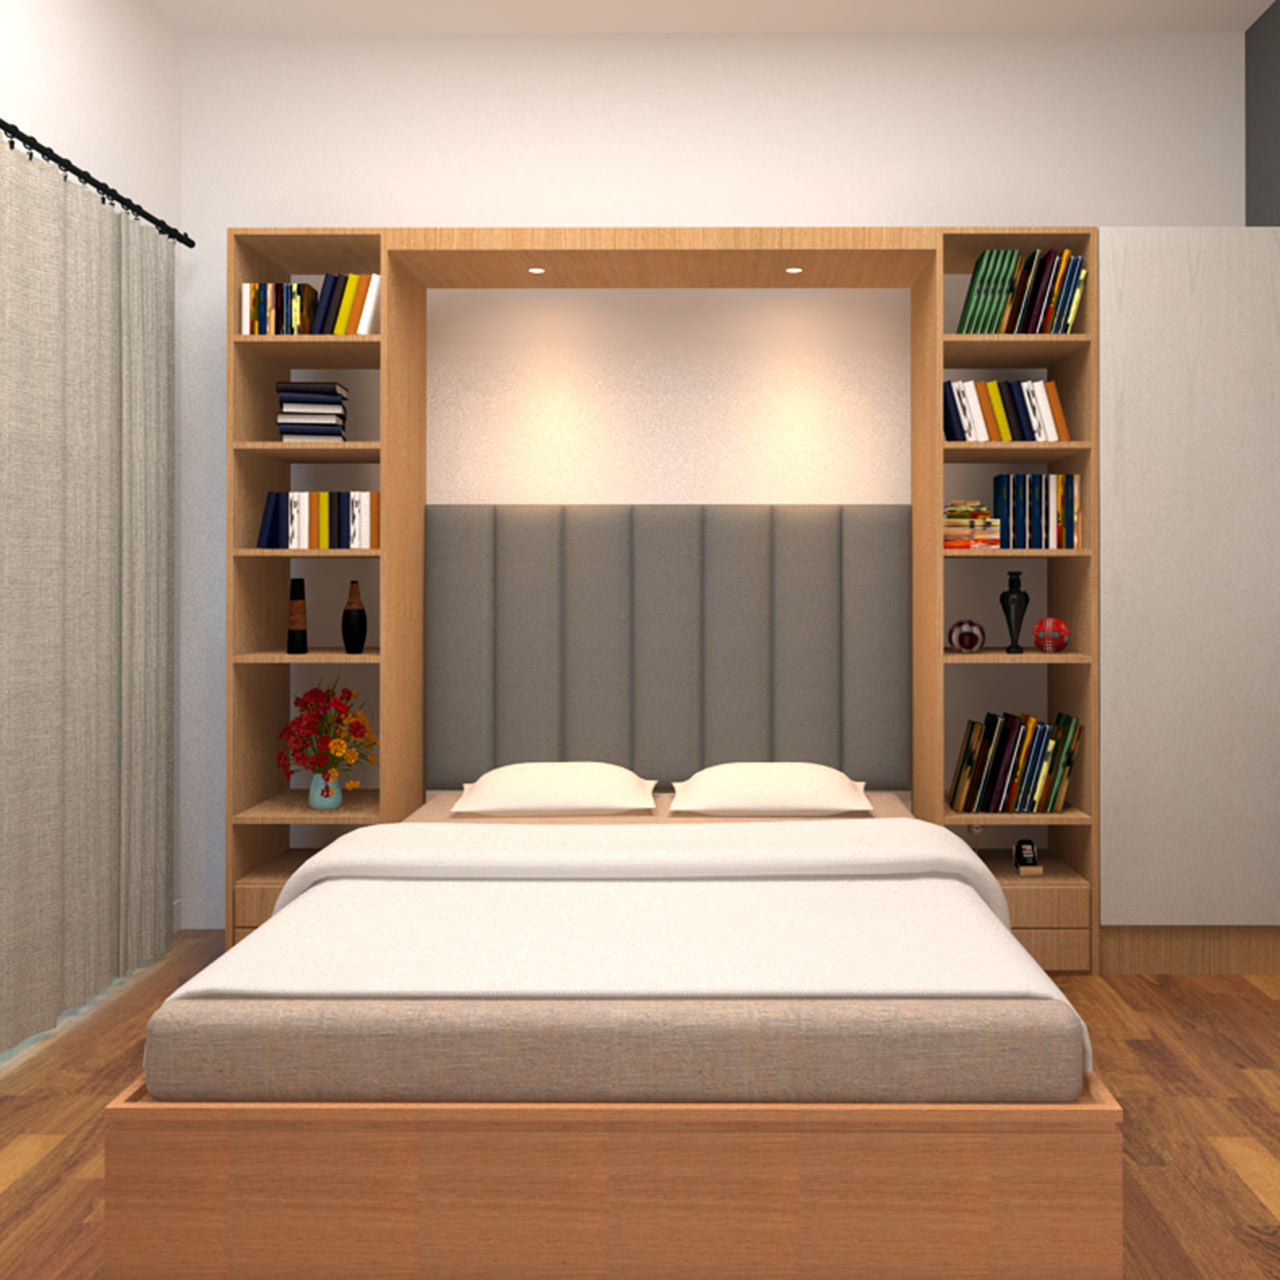 Things to consider before interior designing your bedroom accessories